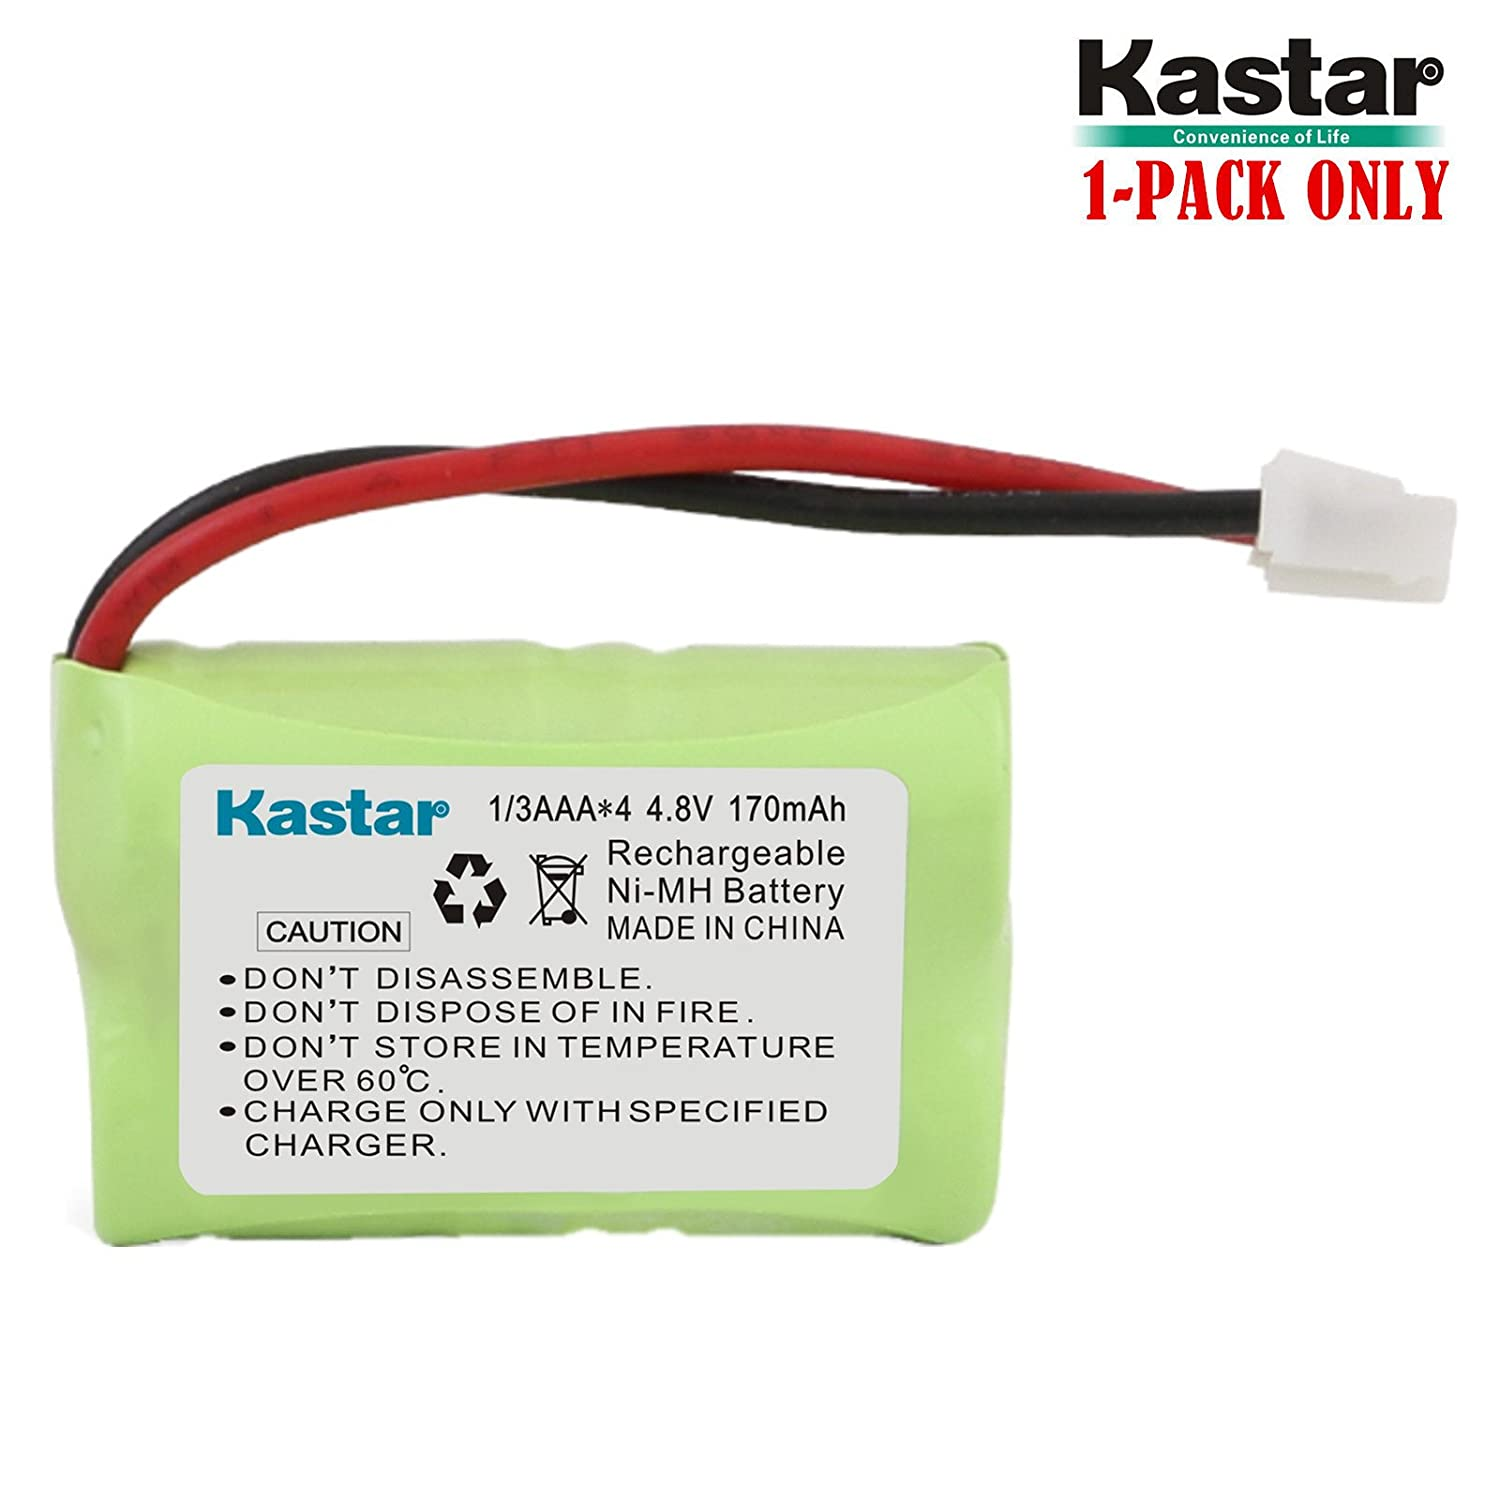 Kastar 170mAh Ni-MH Rechargeable Battery for SportDog FR200 PDT00-12470 RFA-417 PAC00-12159 FR-200P Collar Receiver plus Coaster MH-1B-1//3AAA4.8V-JP. SD-800 PetSafe Yard and Park Remote Dog Trainer SD-400 SAC00-15724